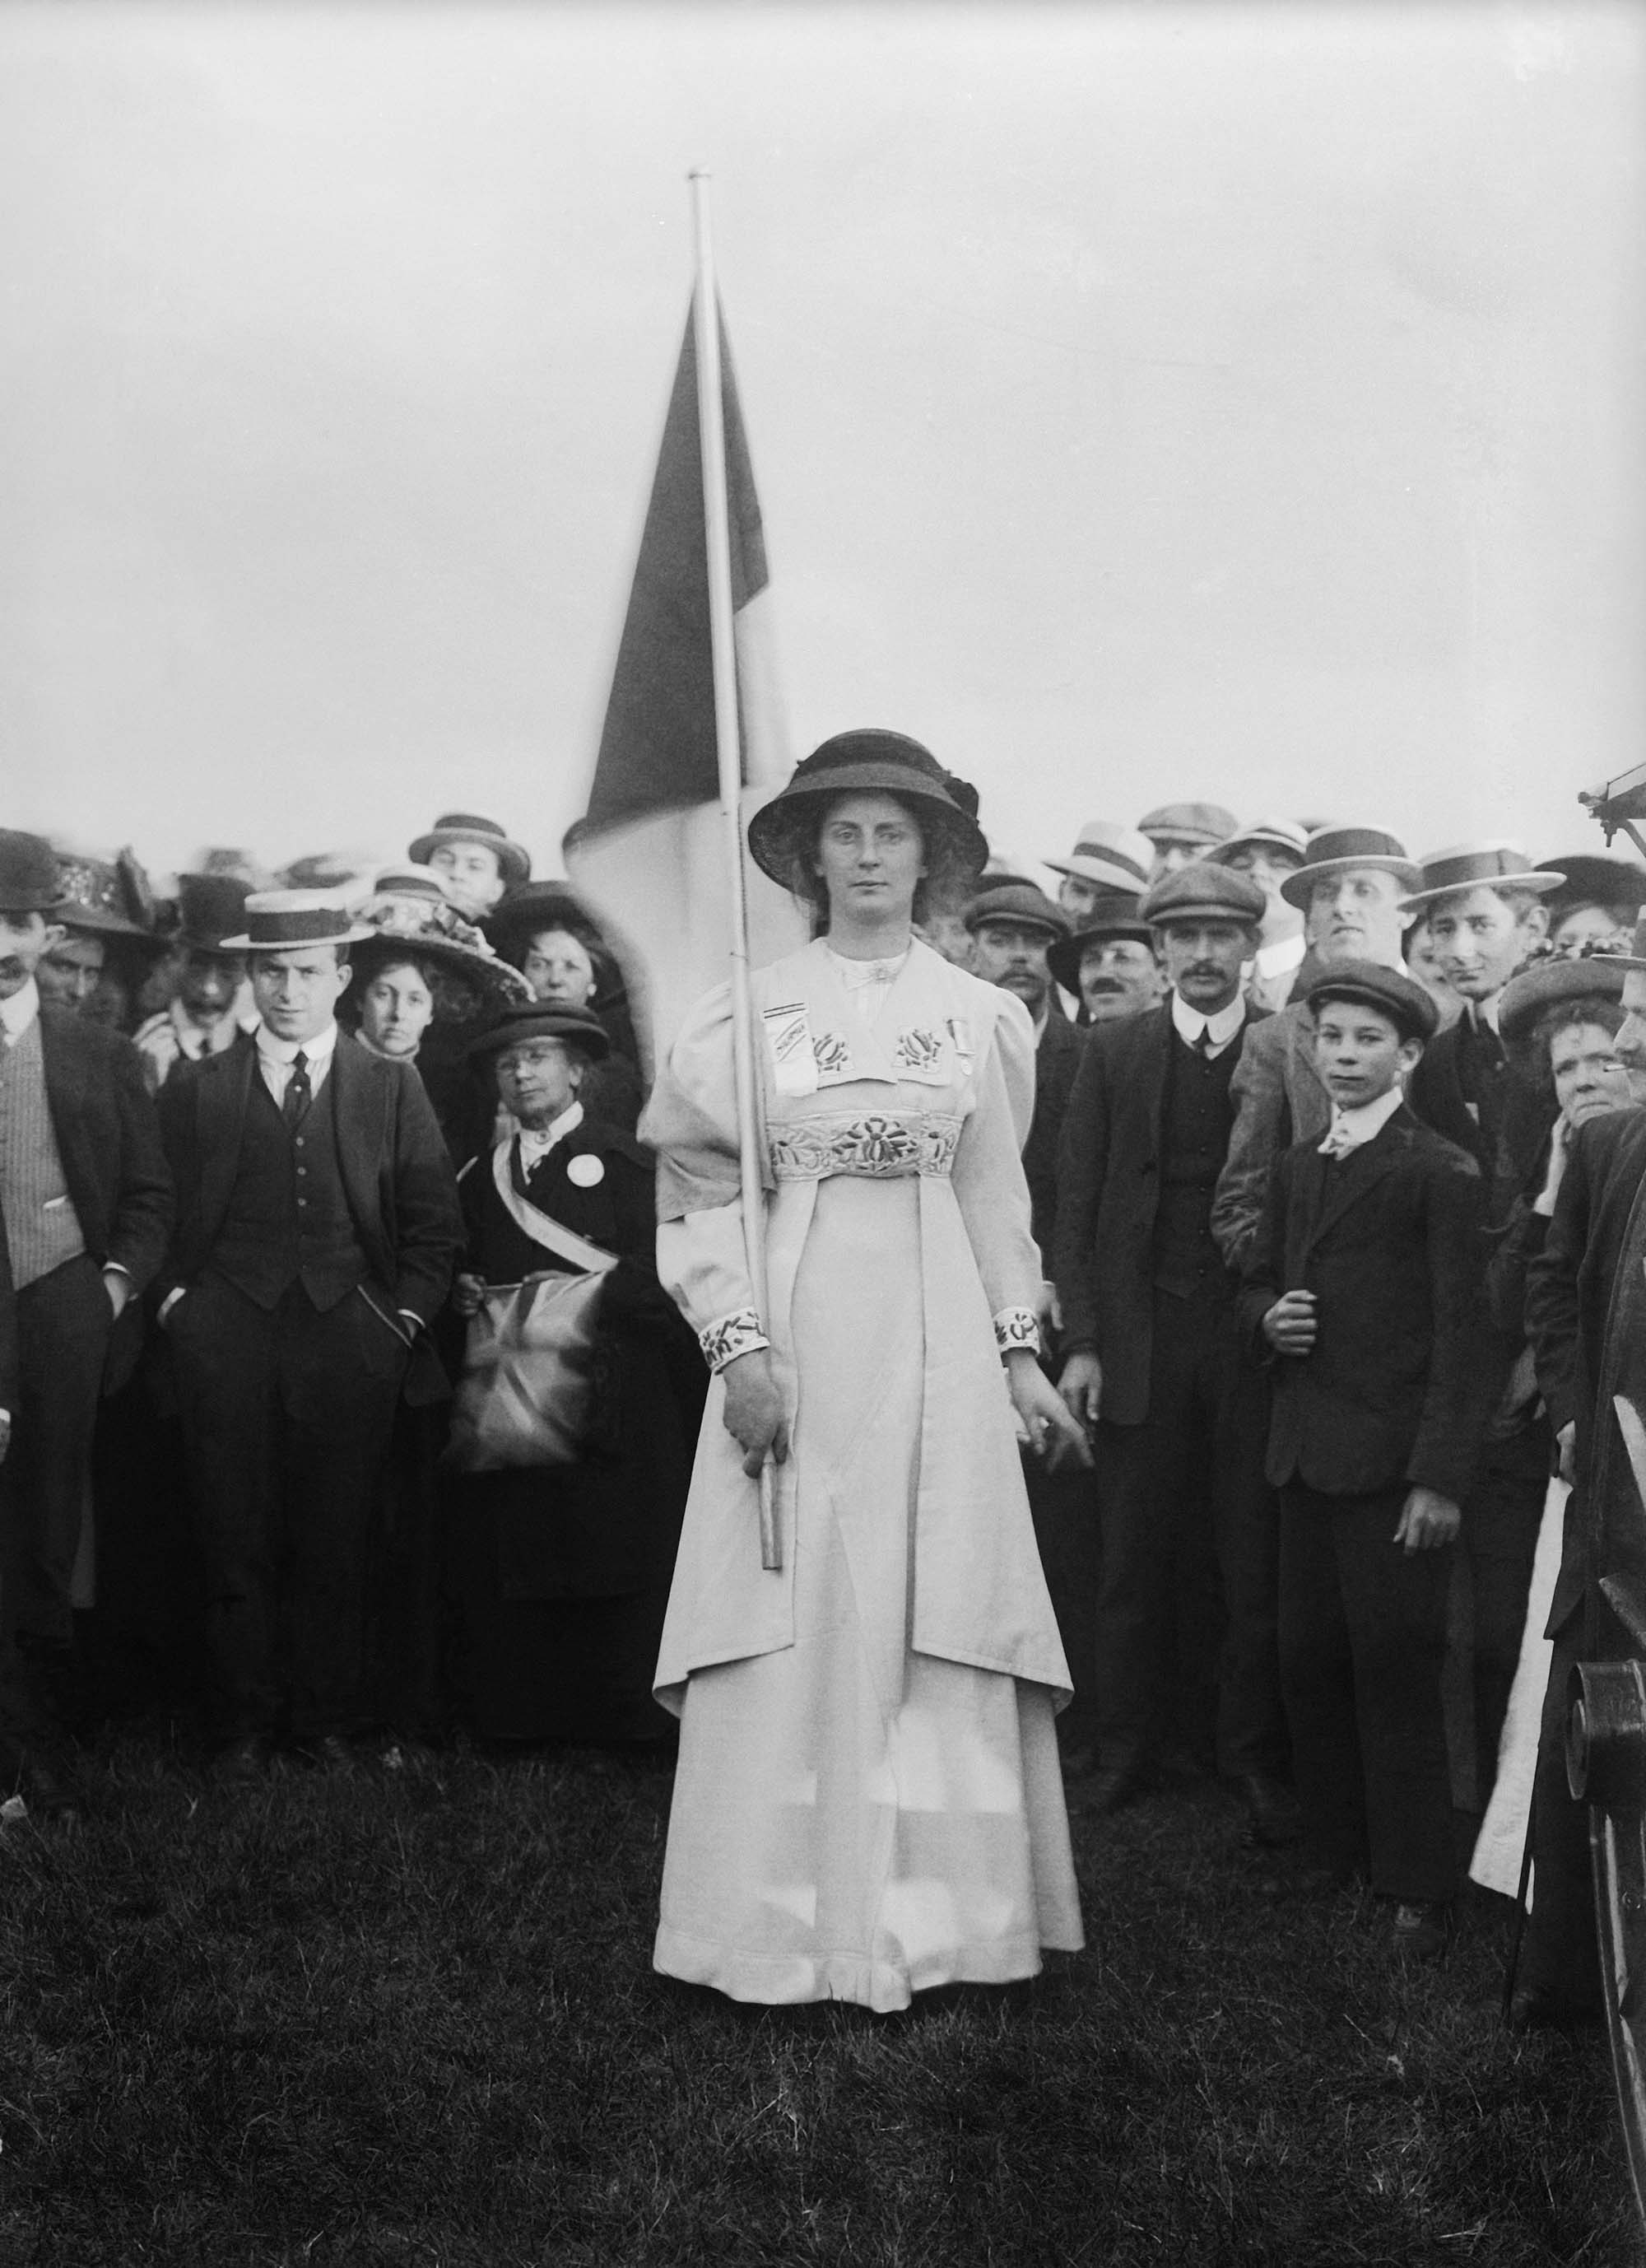 a black and white photo of a proud looking woman standing with a banner as a group of men and women behind her look on